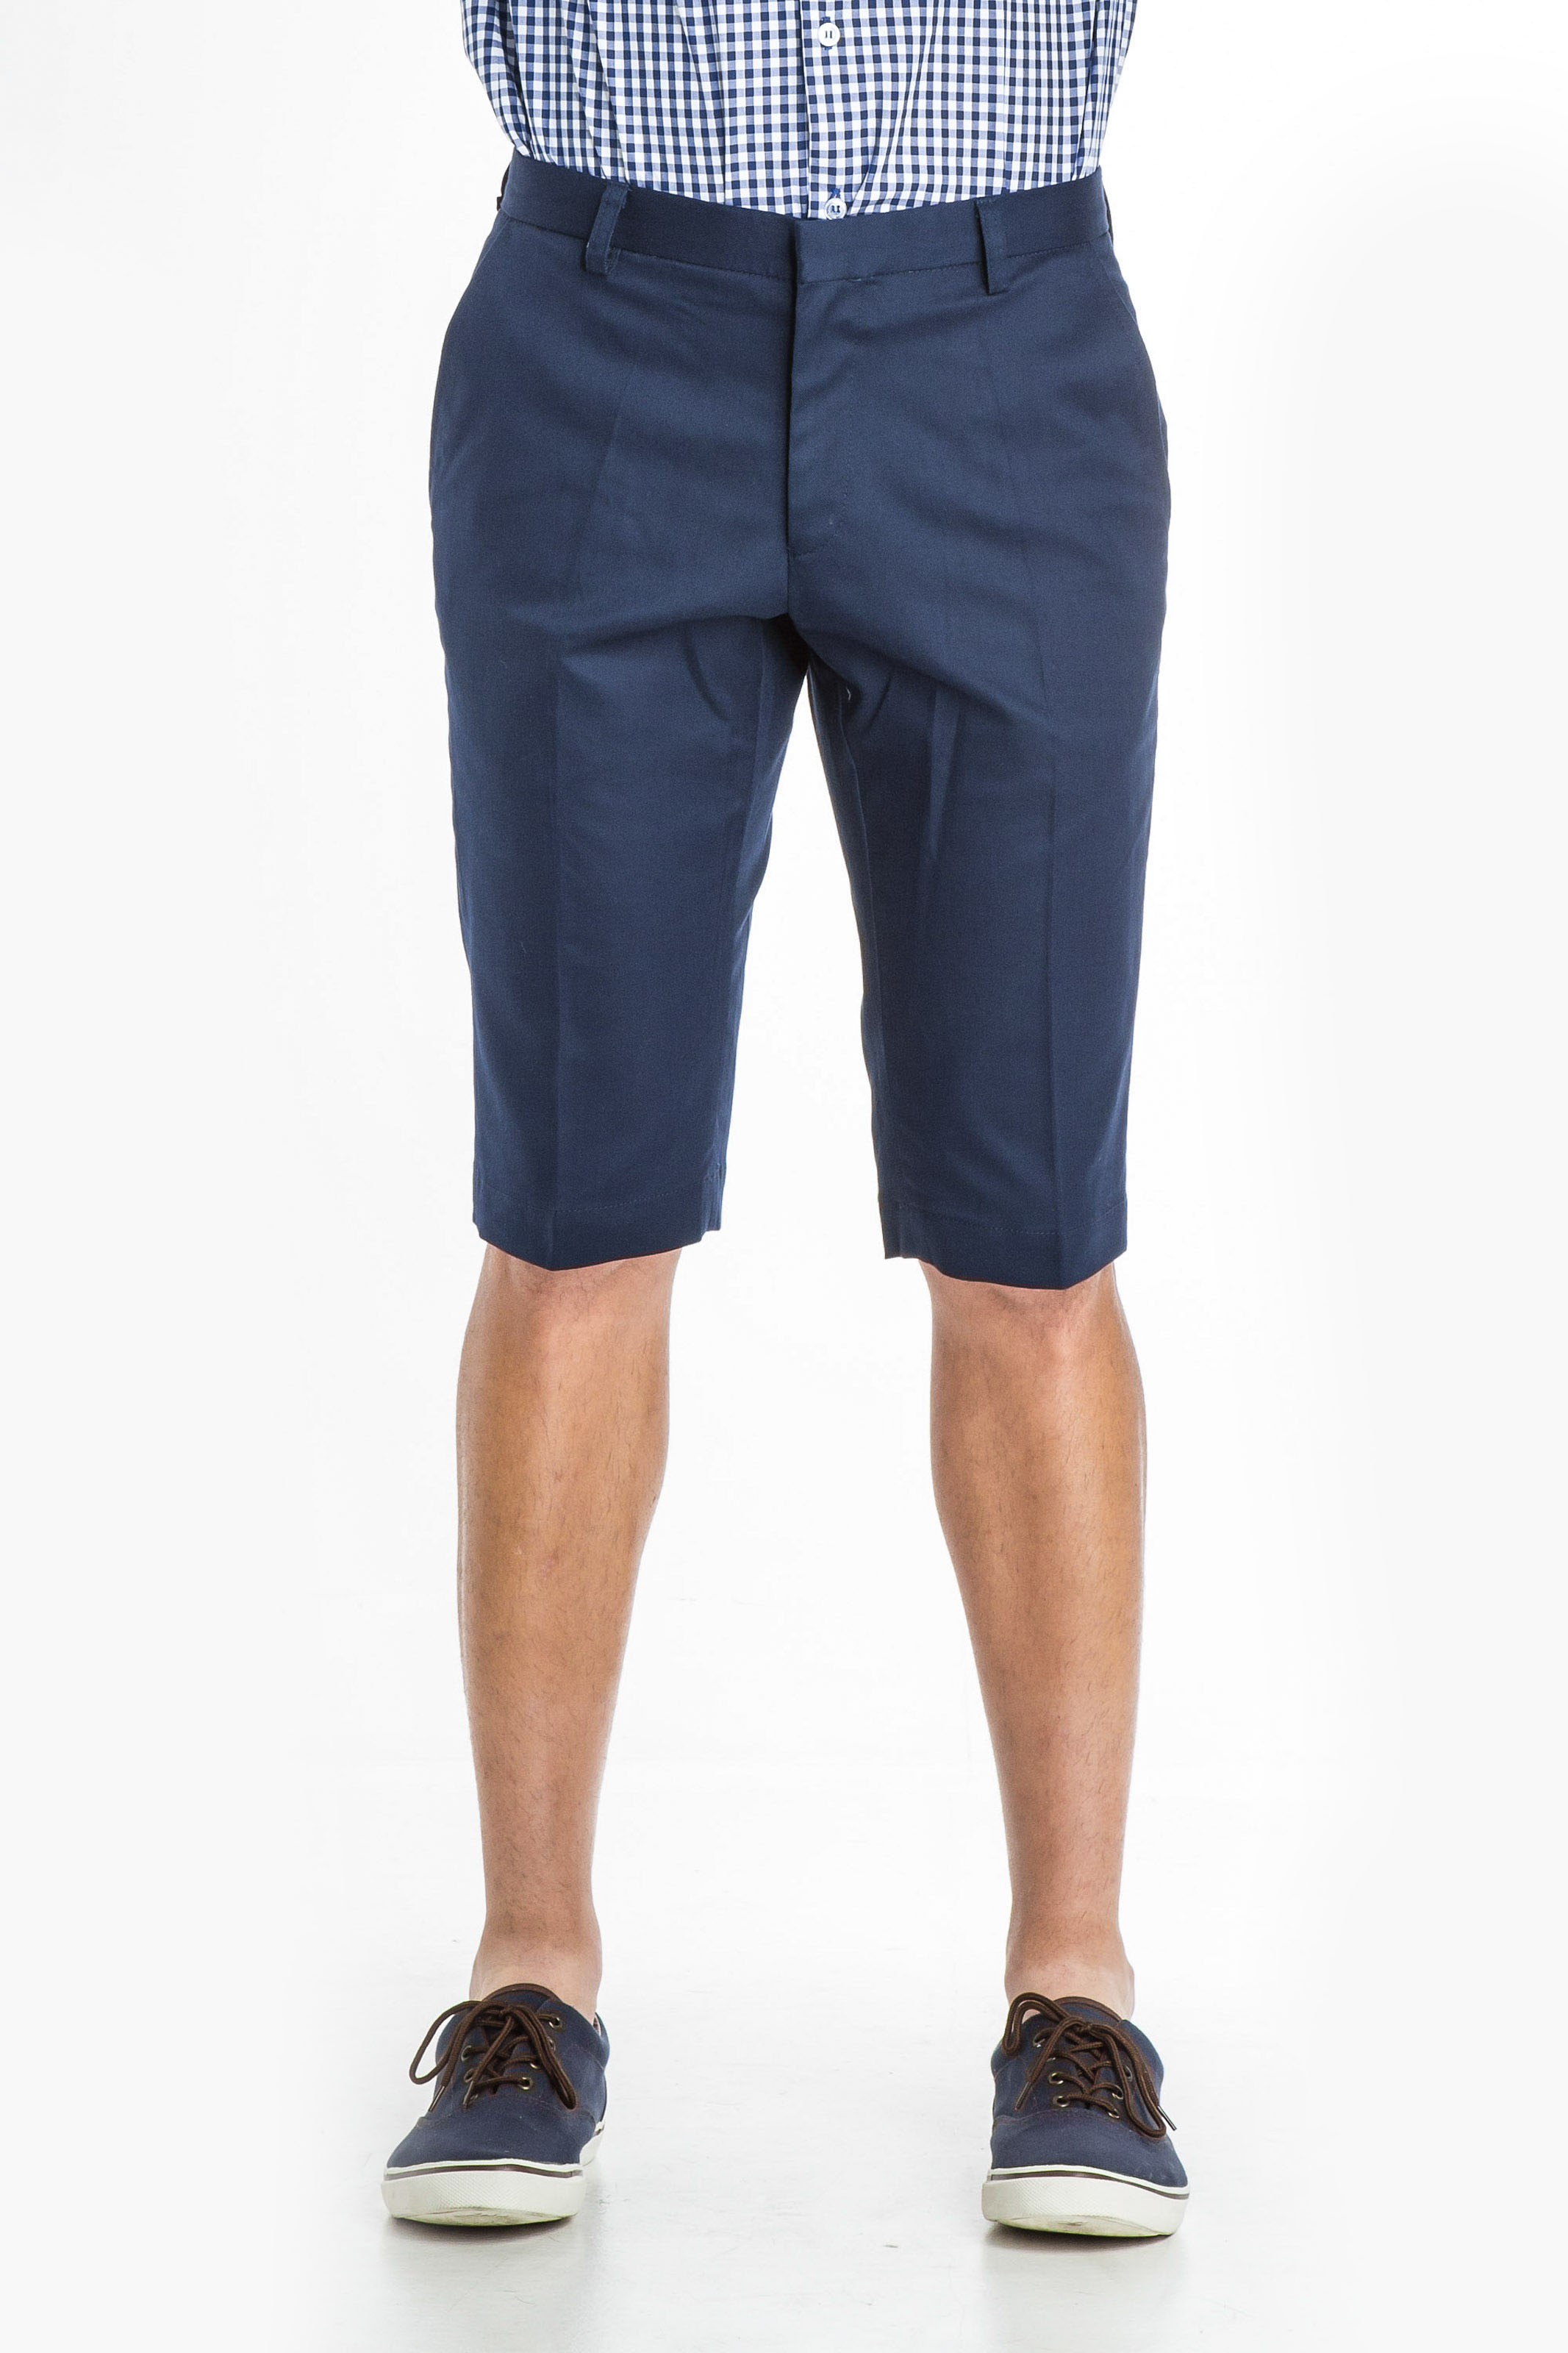 Aris Uniforms-MV01-Men's Shorts